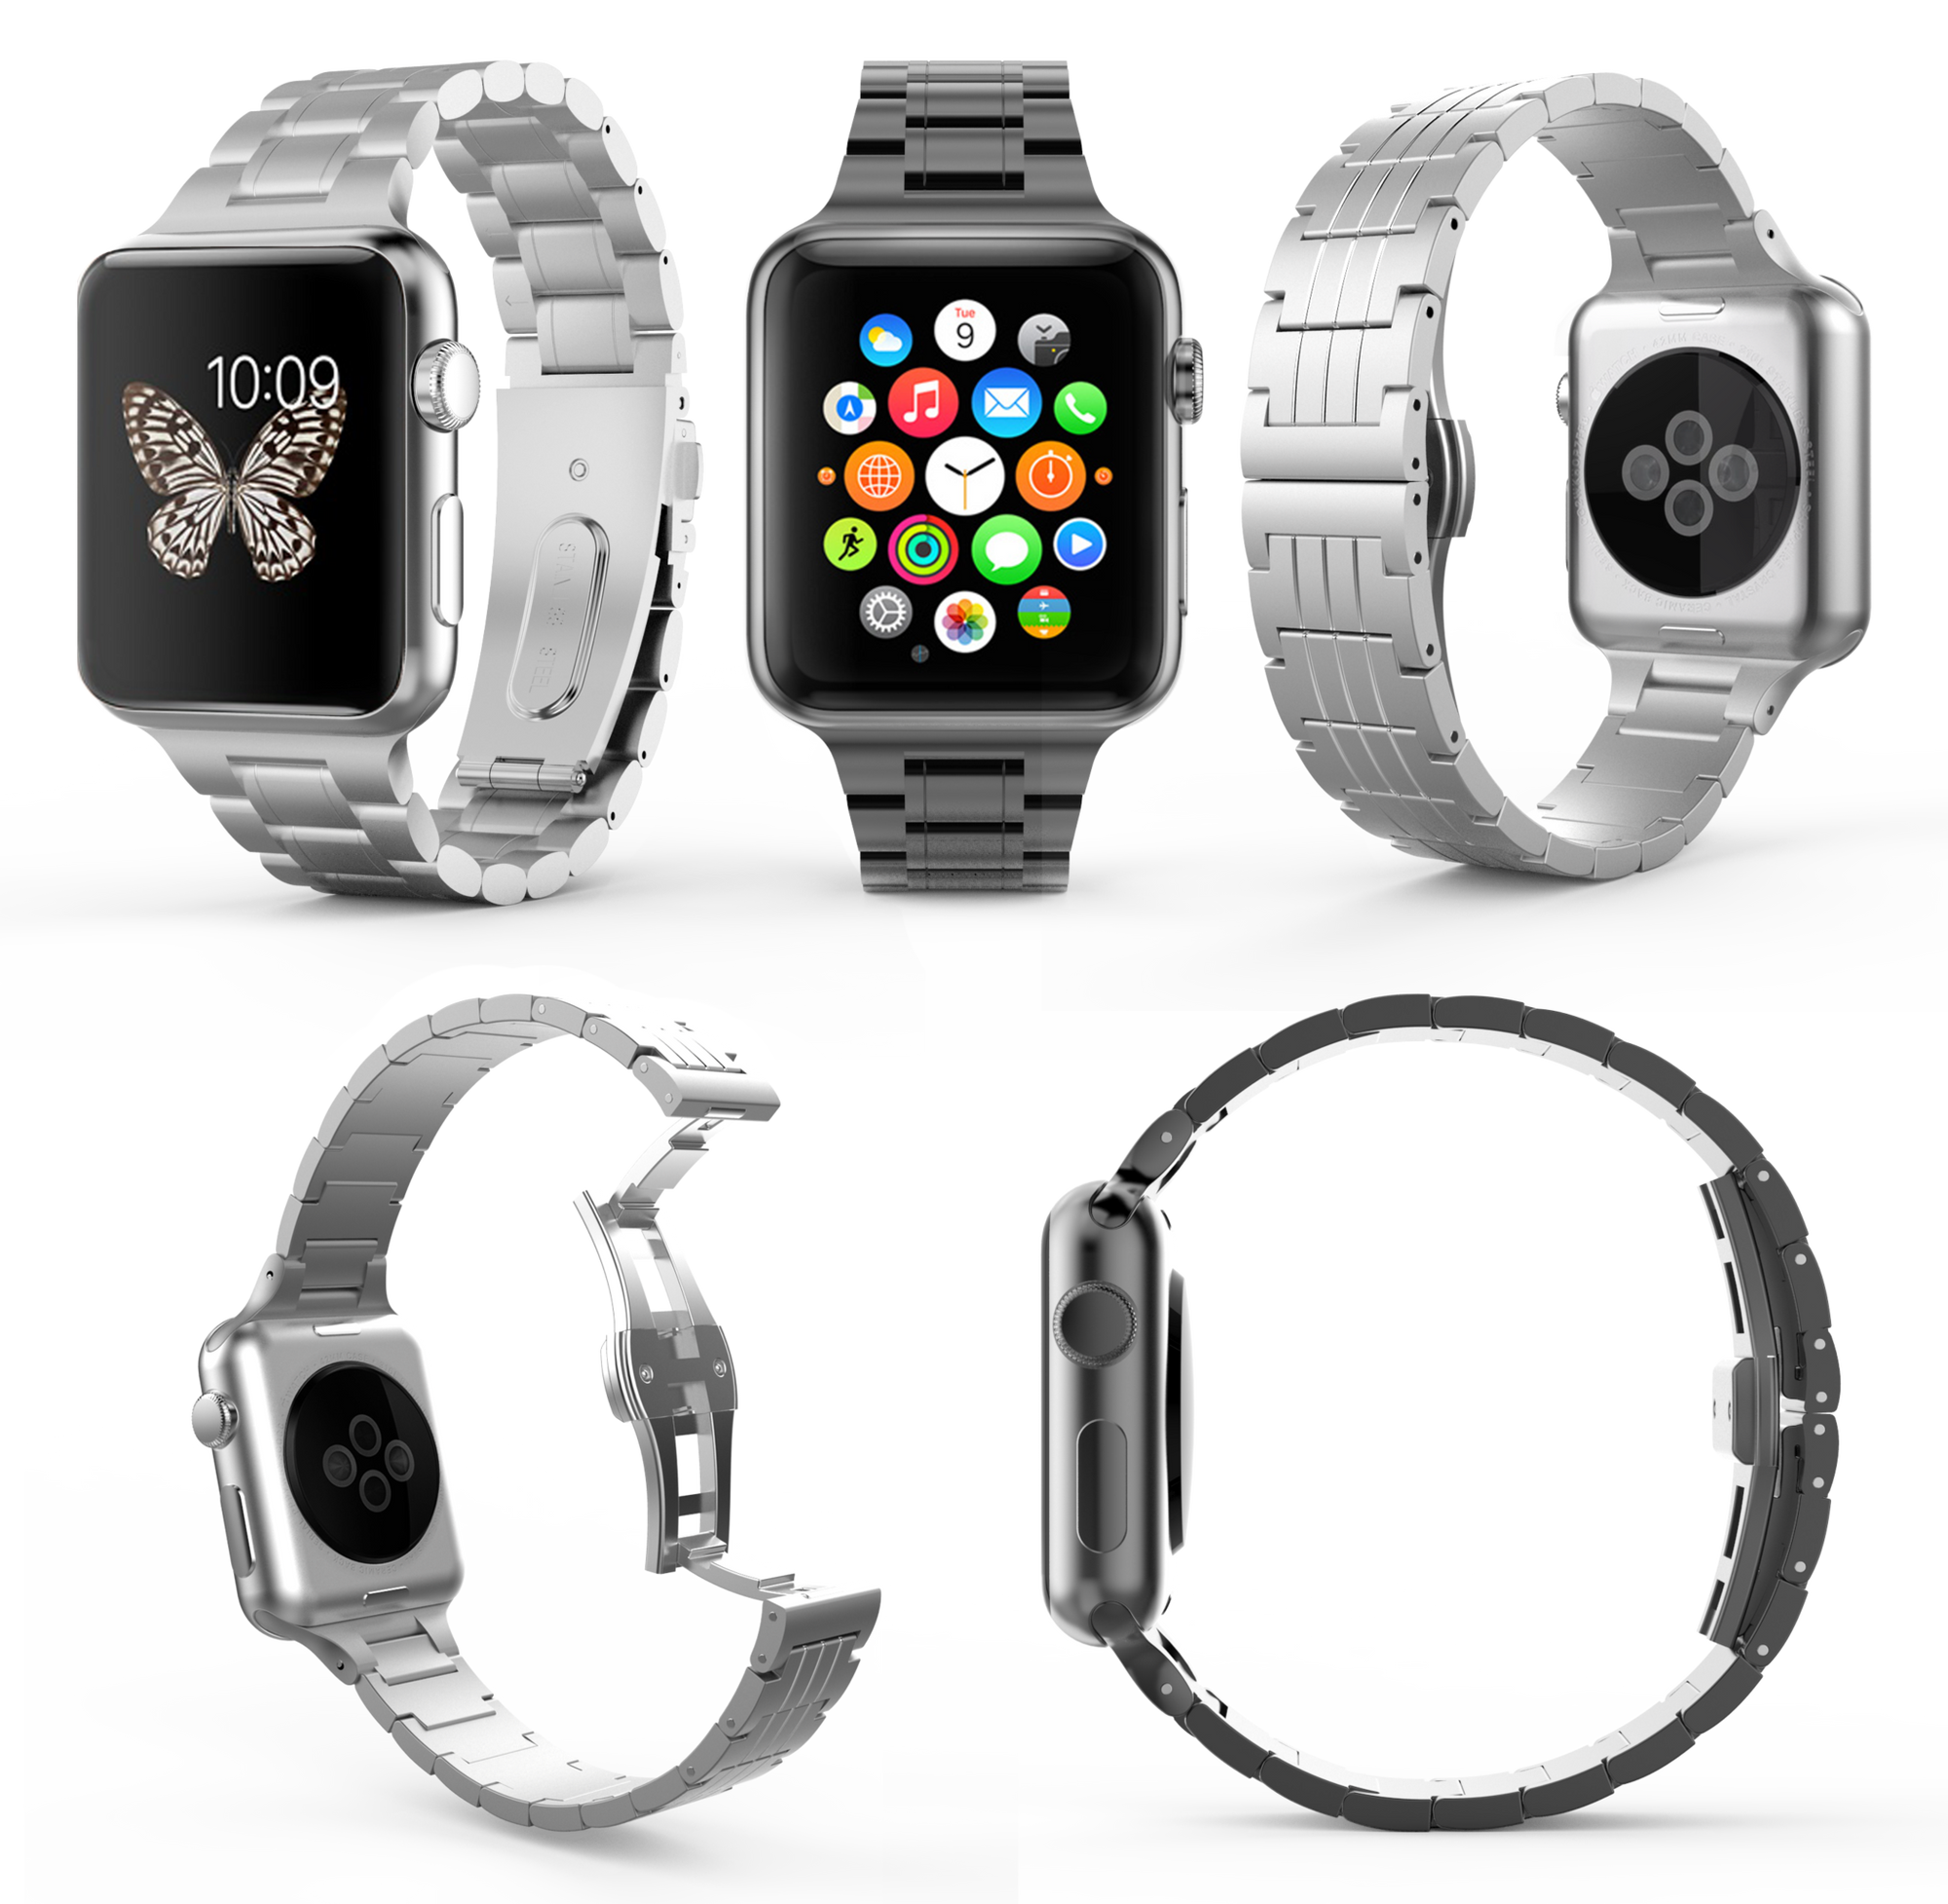 iphone i of sandi collections phone apple watches pointe watch library virtual